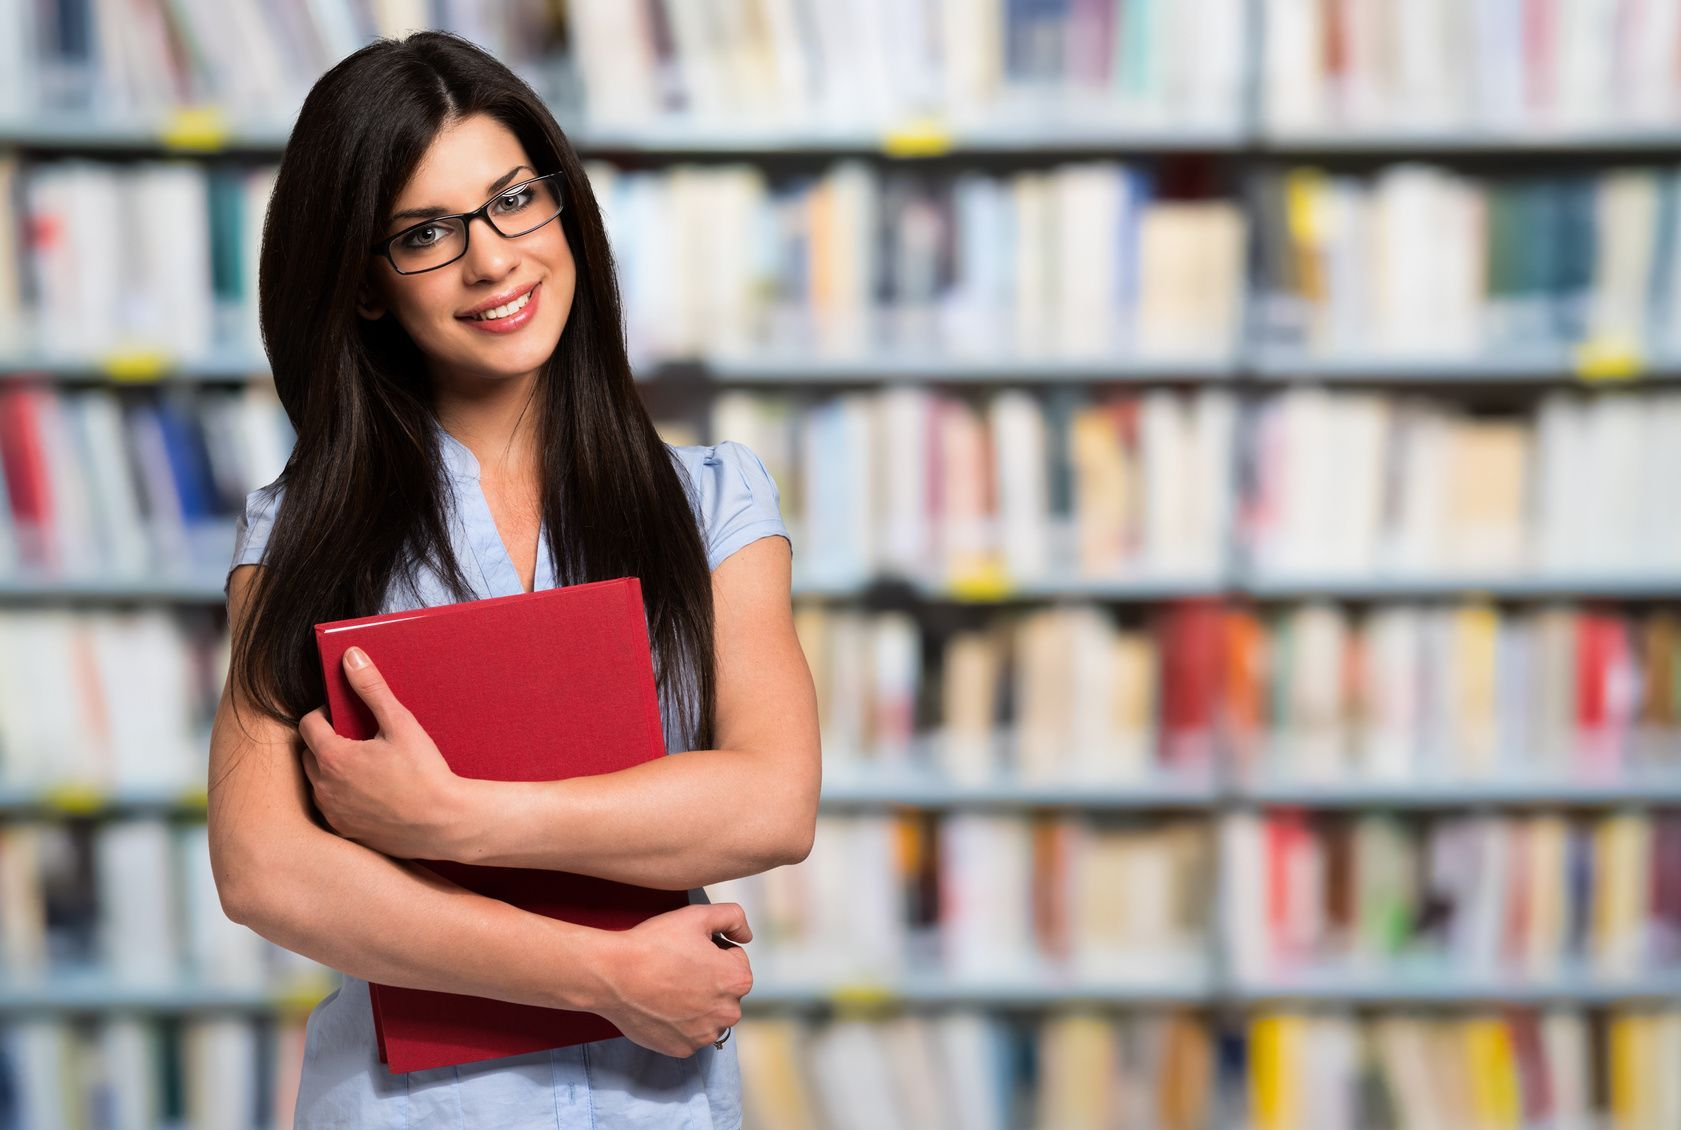 12 reasons why the library is your favorite place to work on your bachelor or master thesis